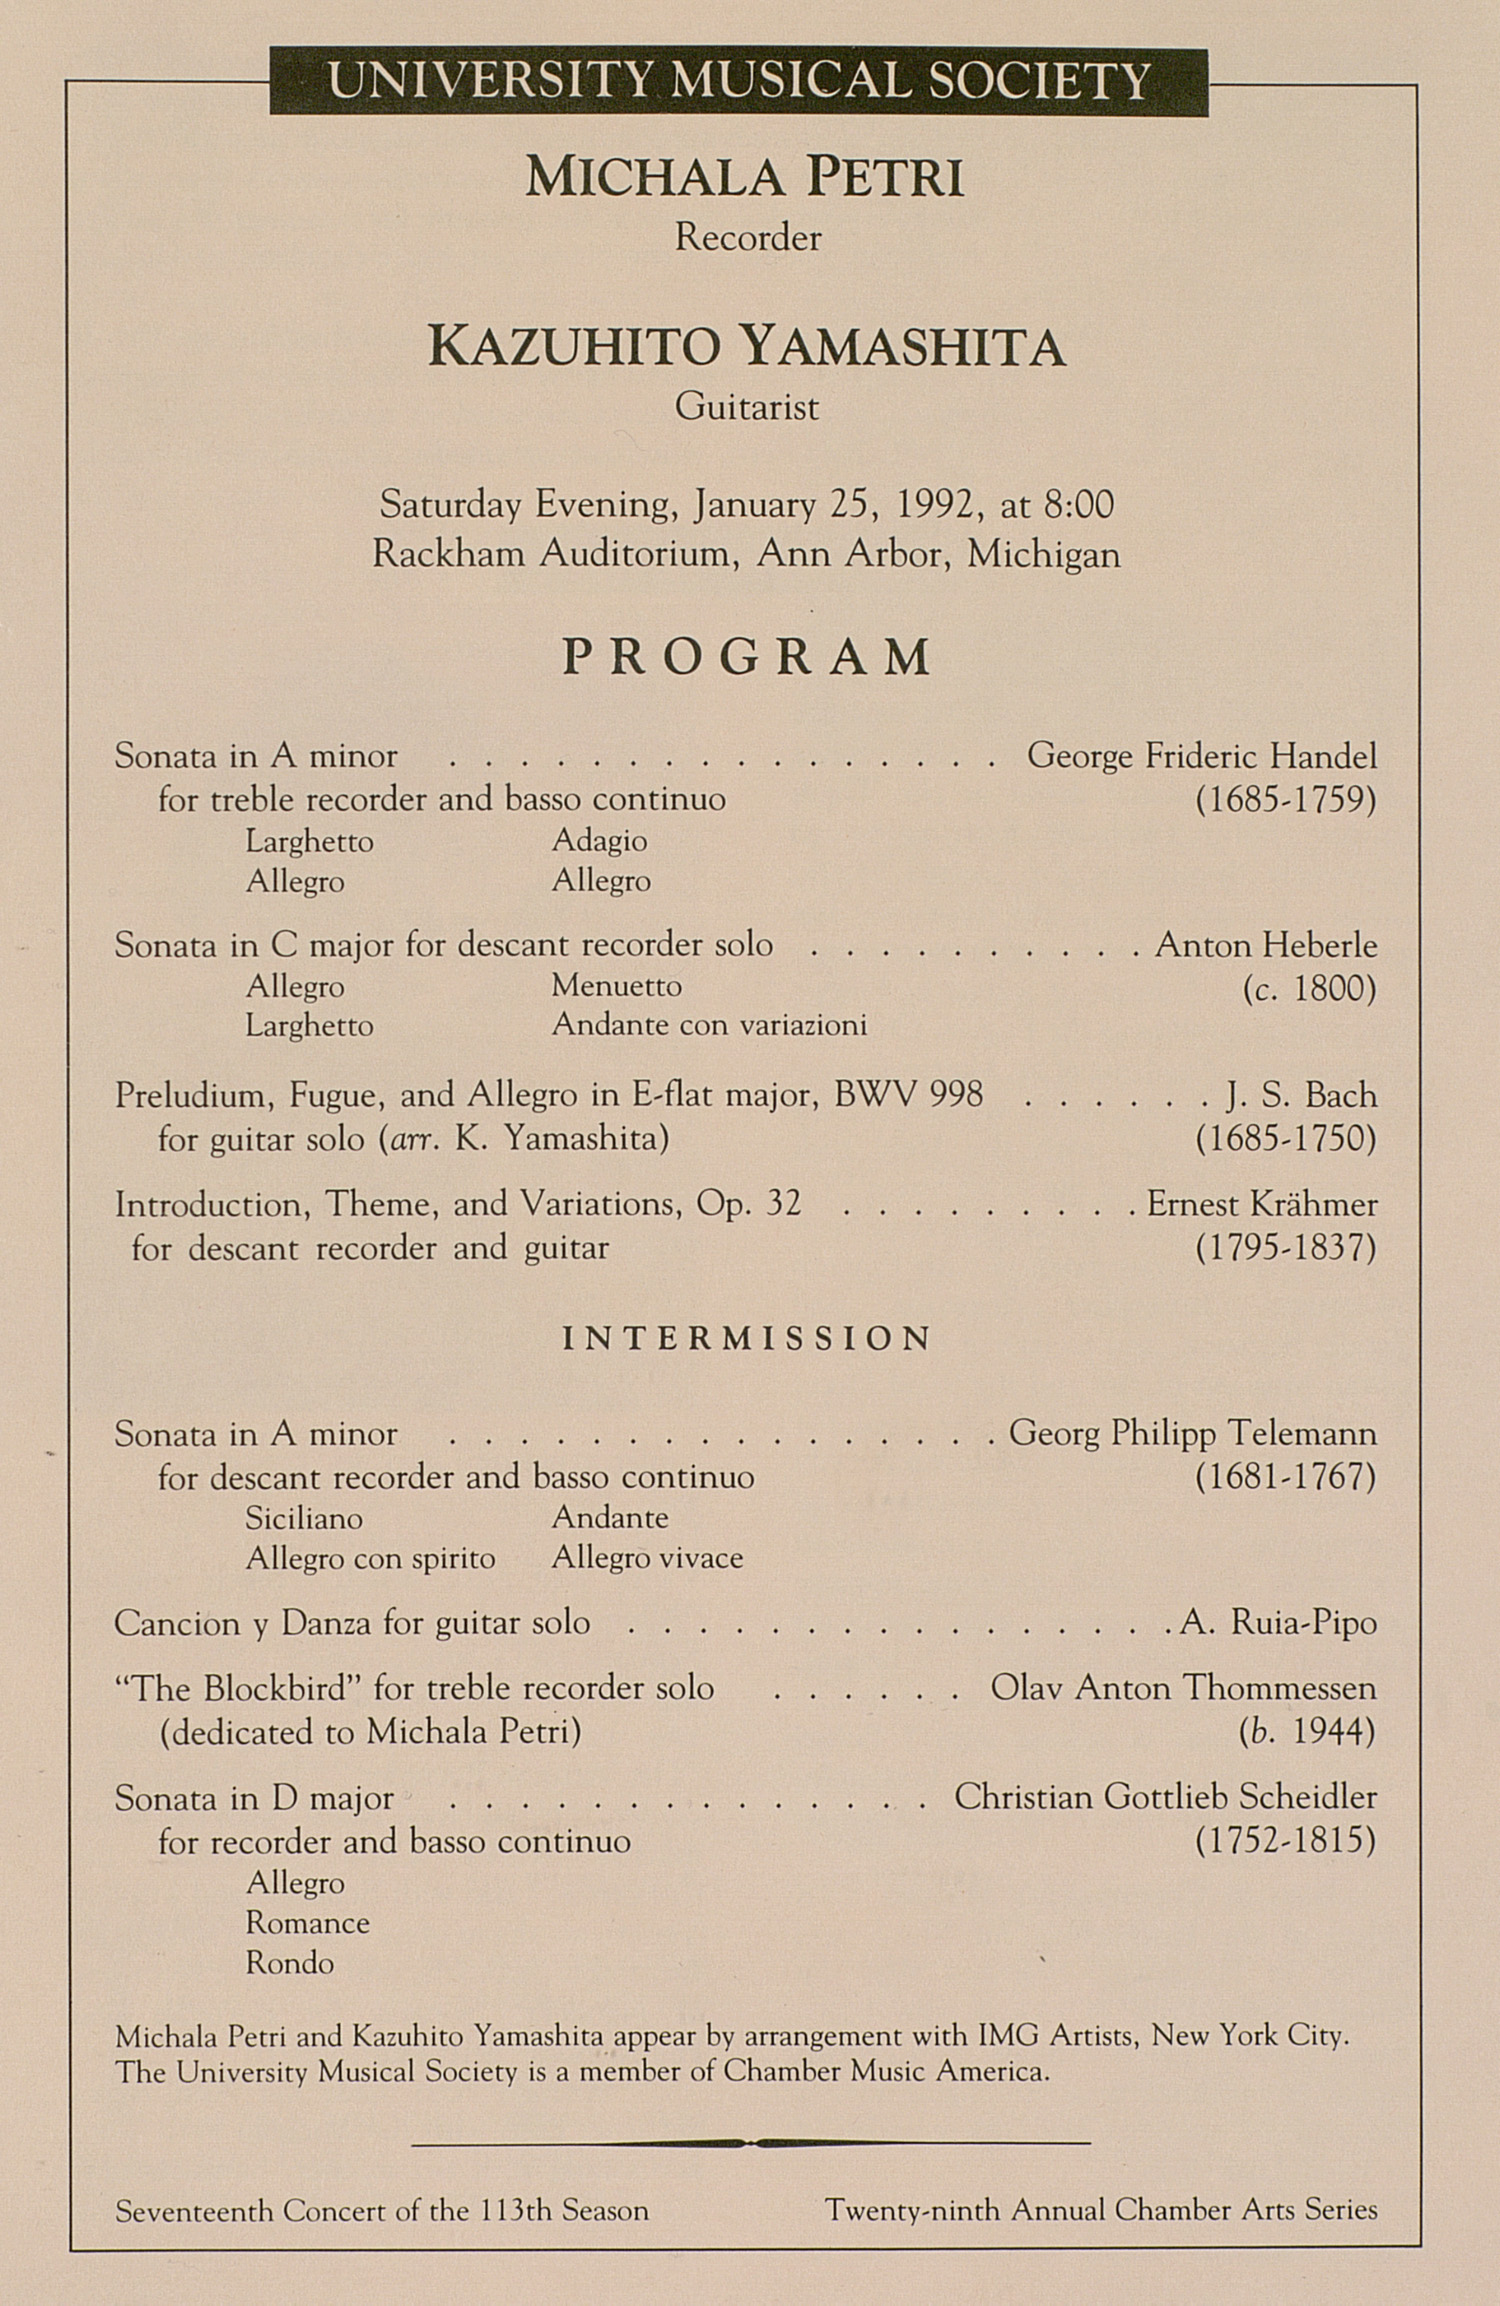 UMS Concert Program, January 25, 1992: University Musical Society --  image